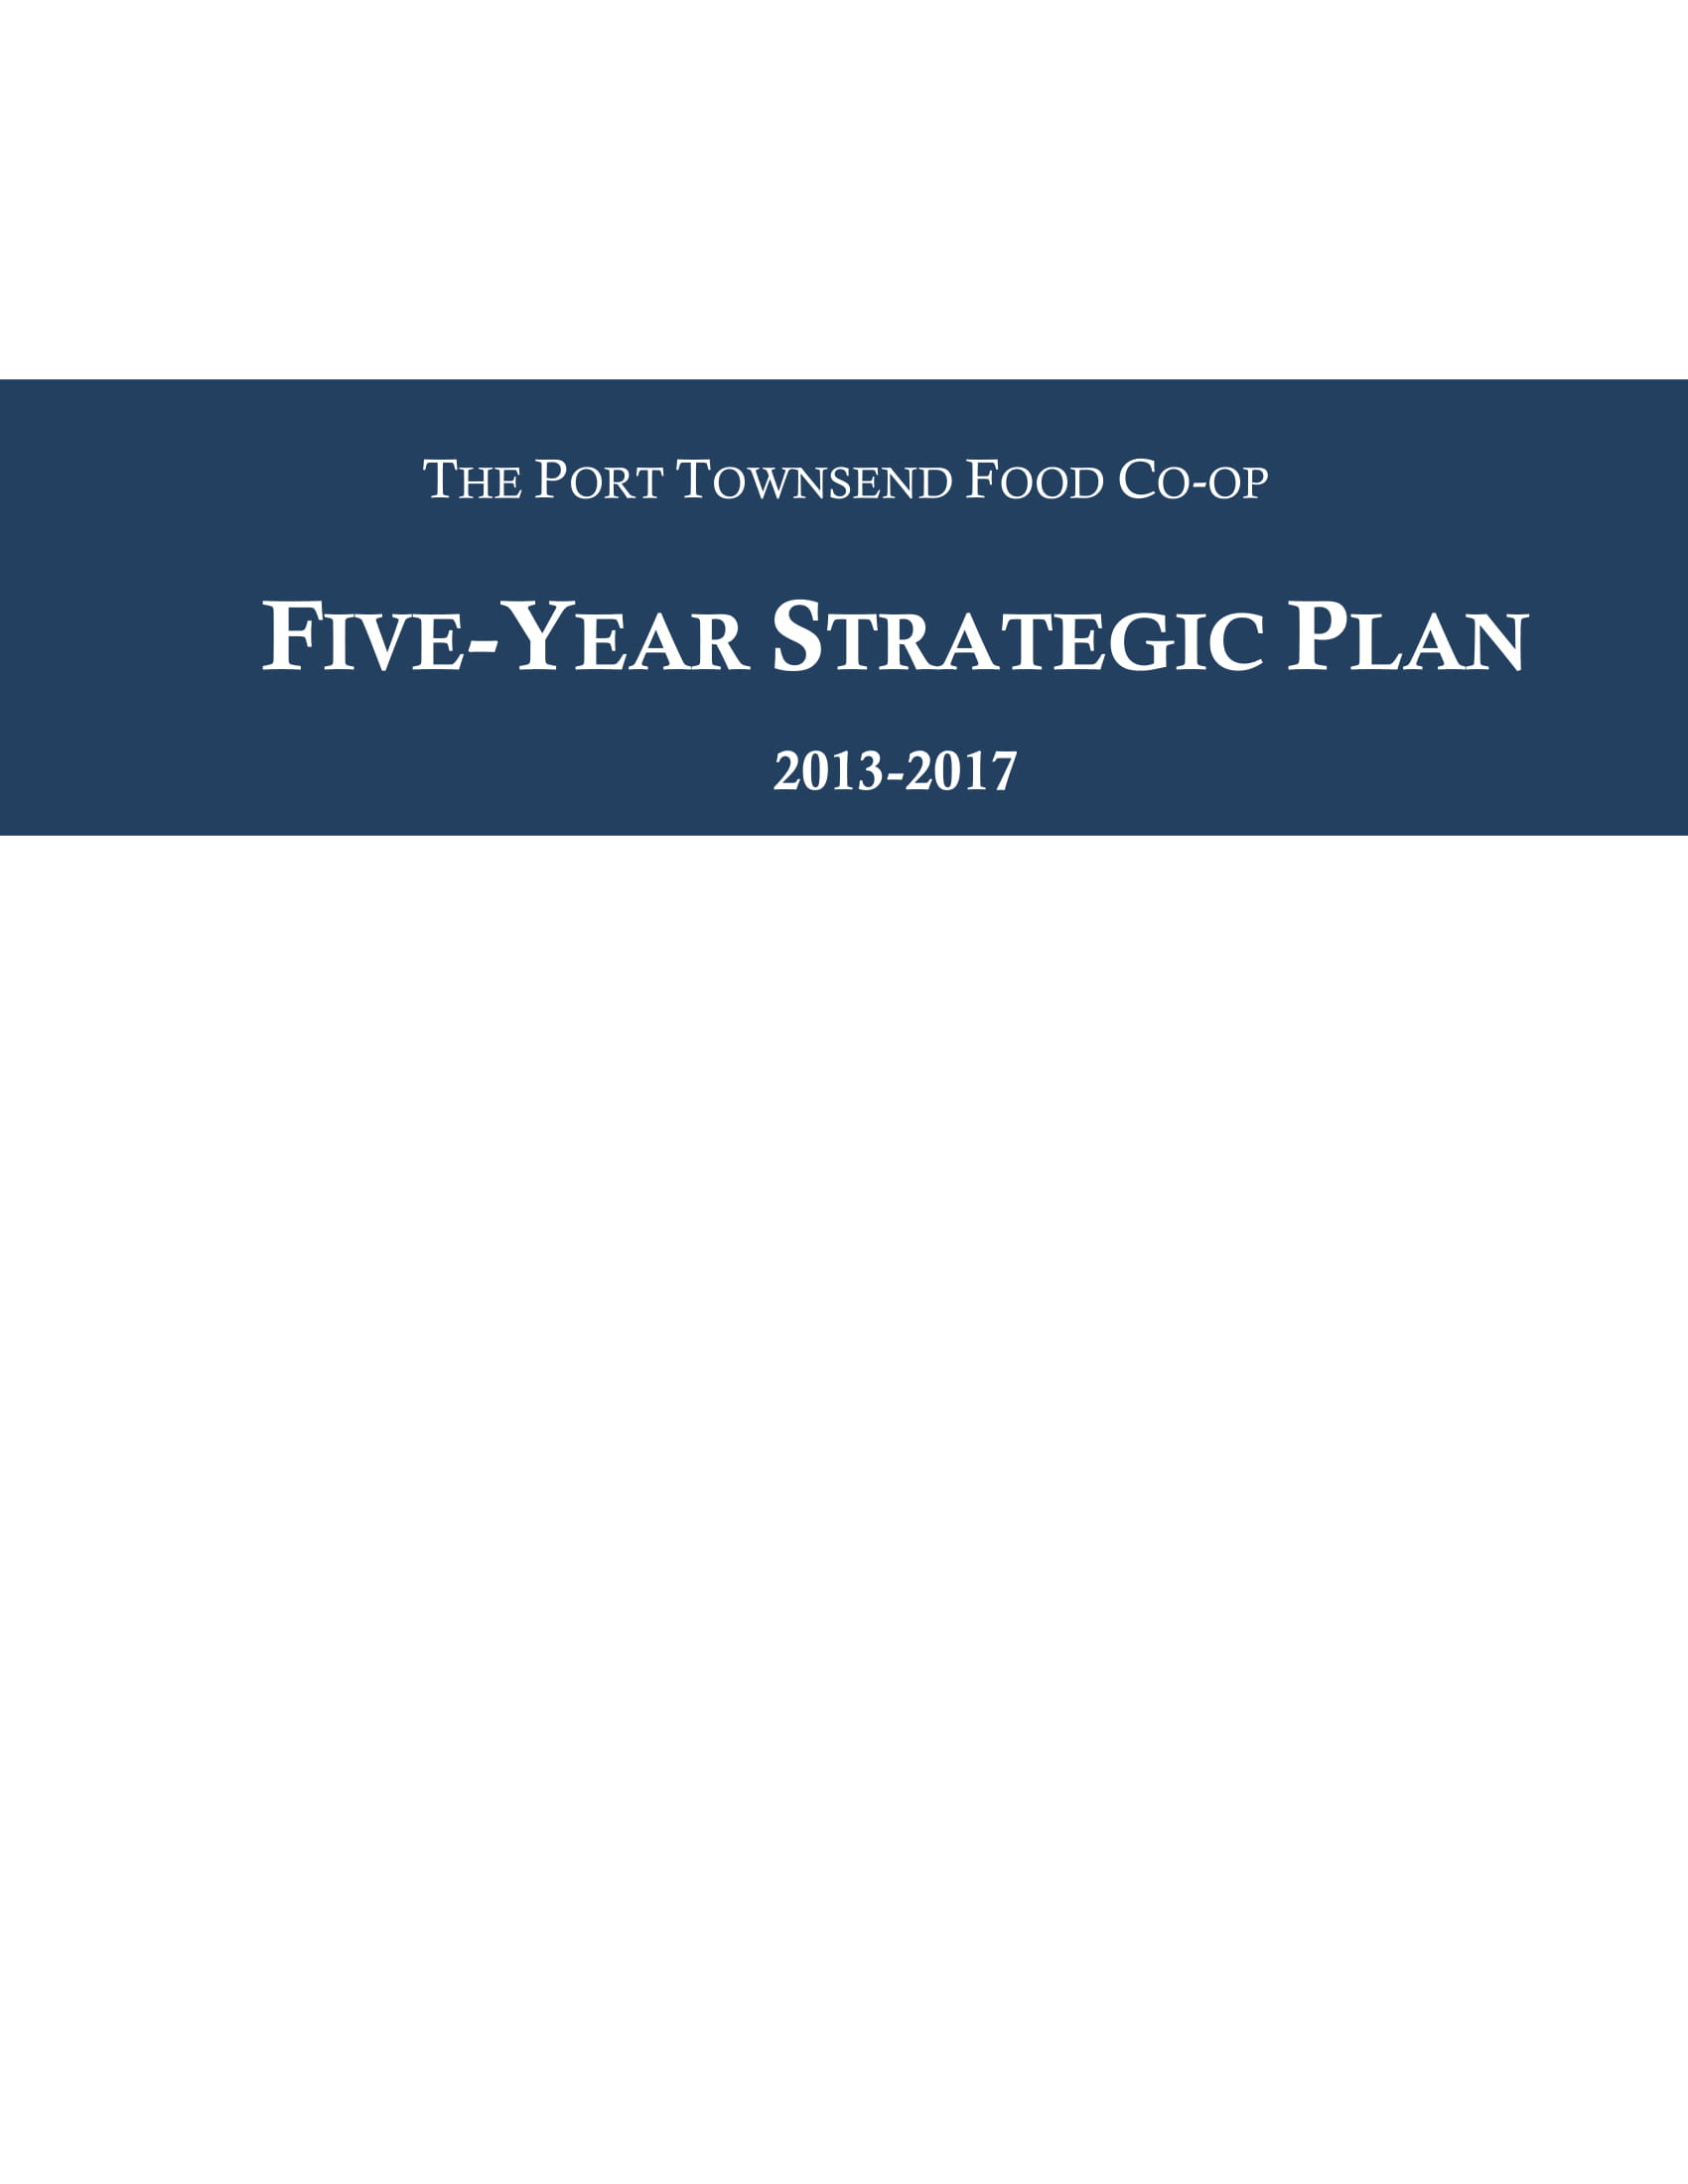 standard 5 year strategic plan example 1